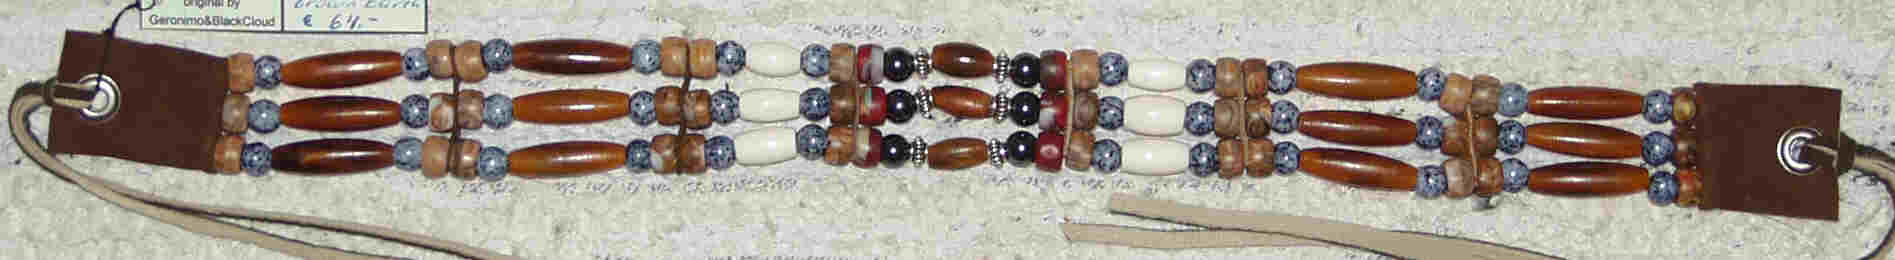 Native Halsband - Brown Earth. Mit Crowbeads, Marmorperlen, echten Knochen, Hornpipes, Hämatithperlen, Sterling-Silberperlen, Metallösen. Richtpreis € 64.-